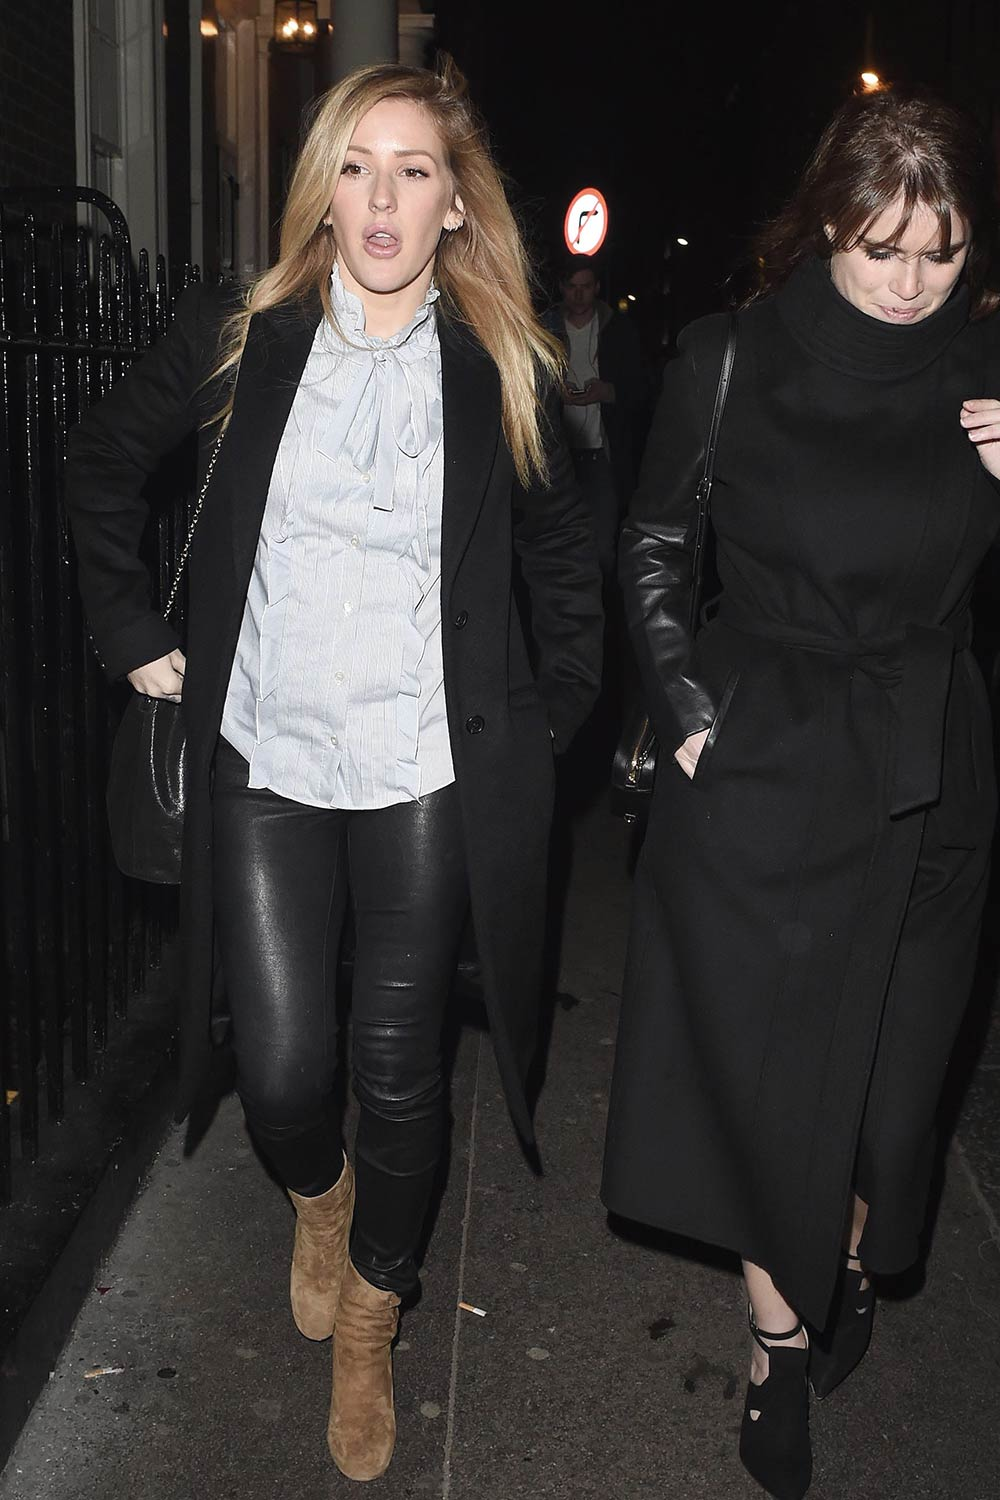 Ellie Goulding leaving the Arts Club